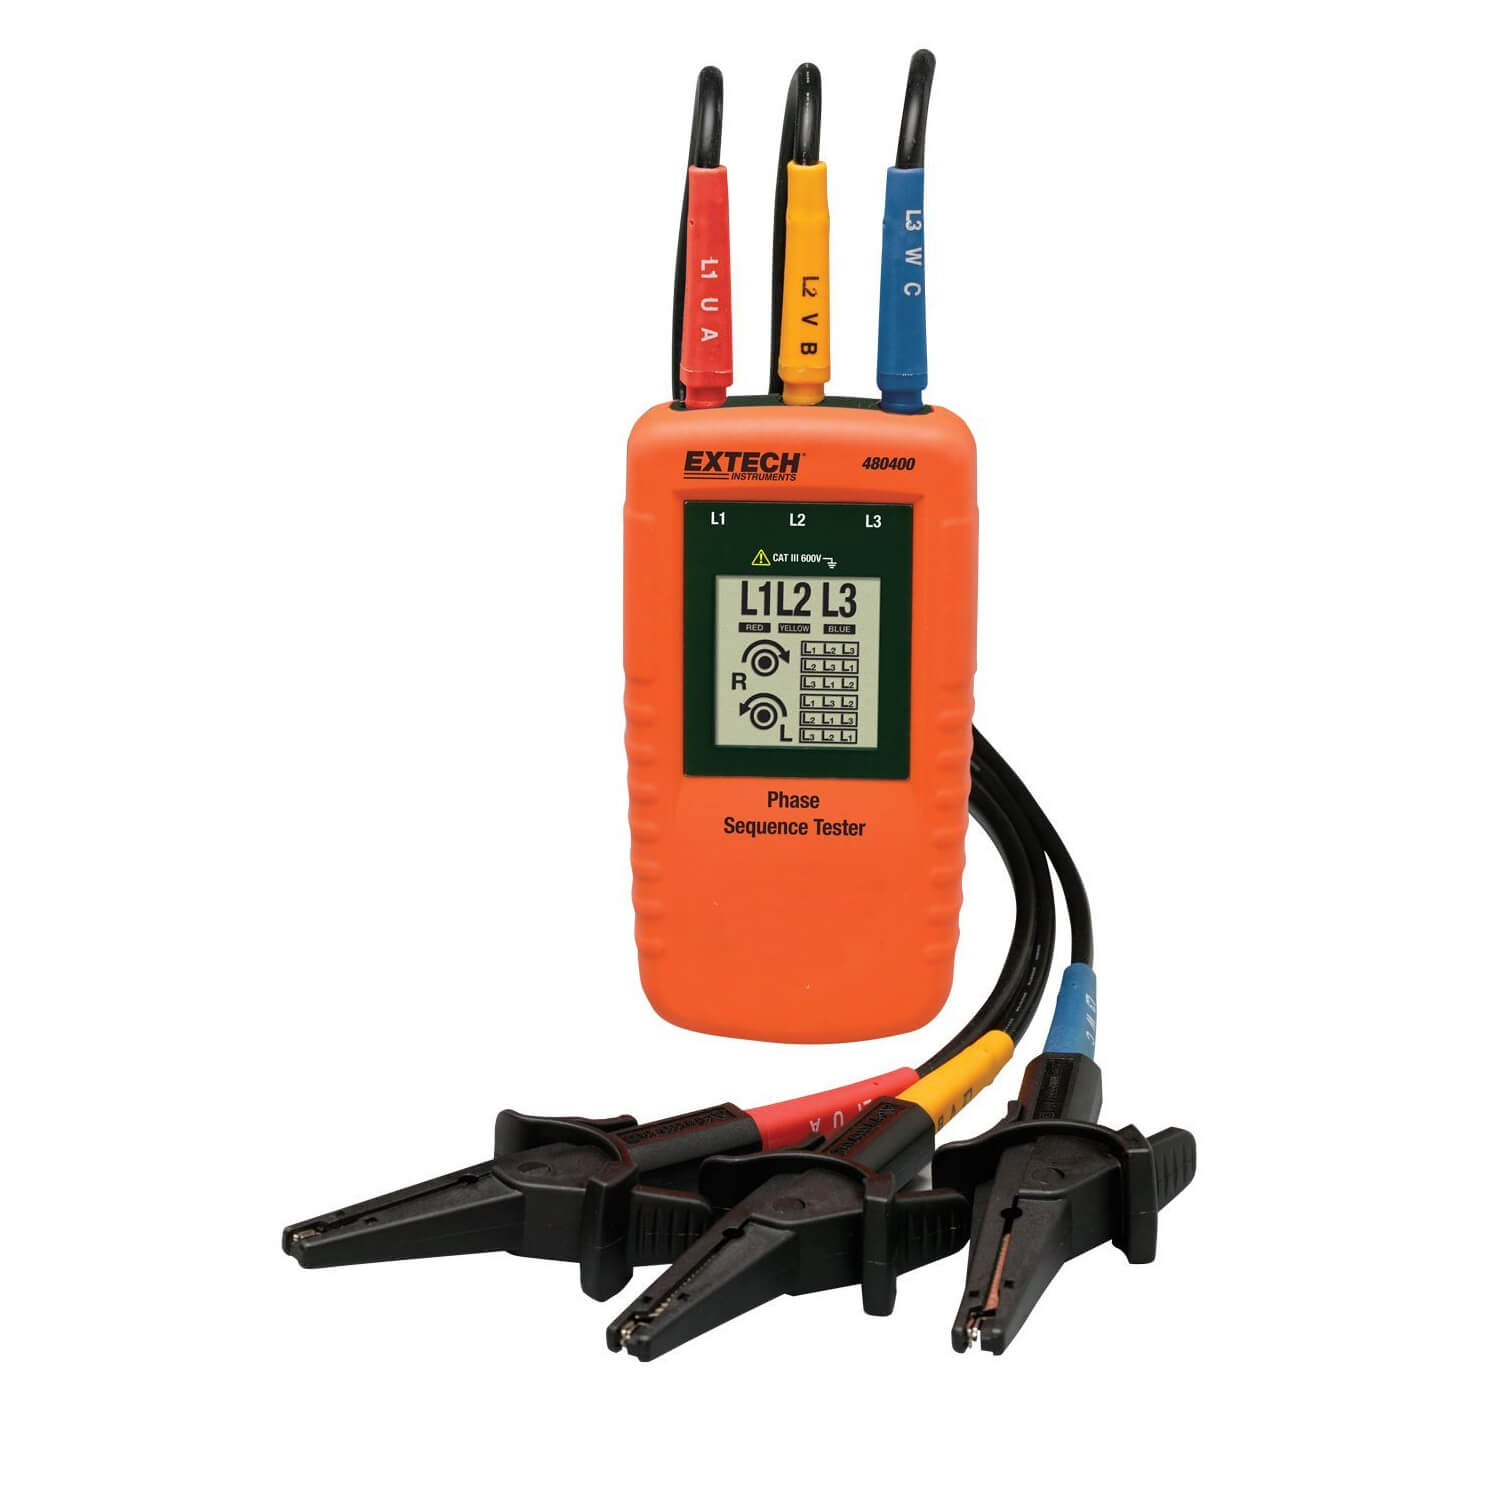 Extech 480400 3-Phase Rotation Meter